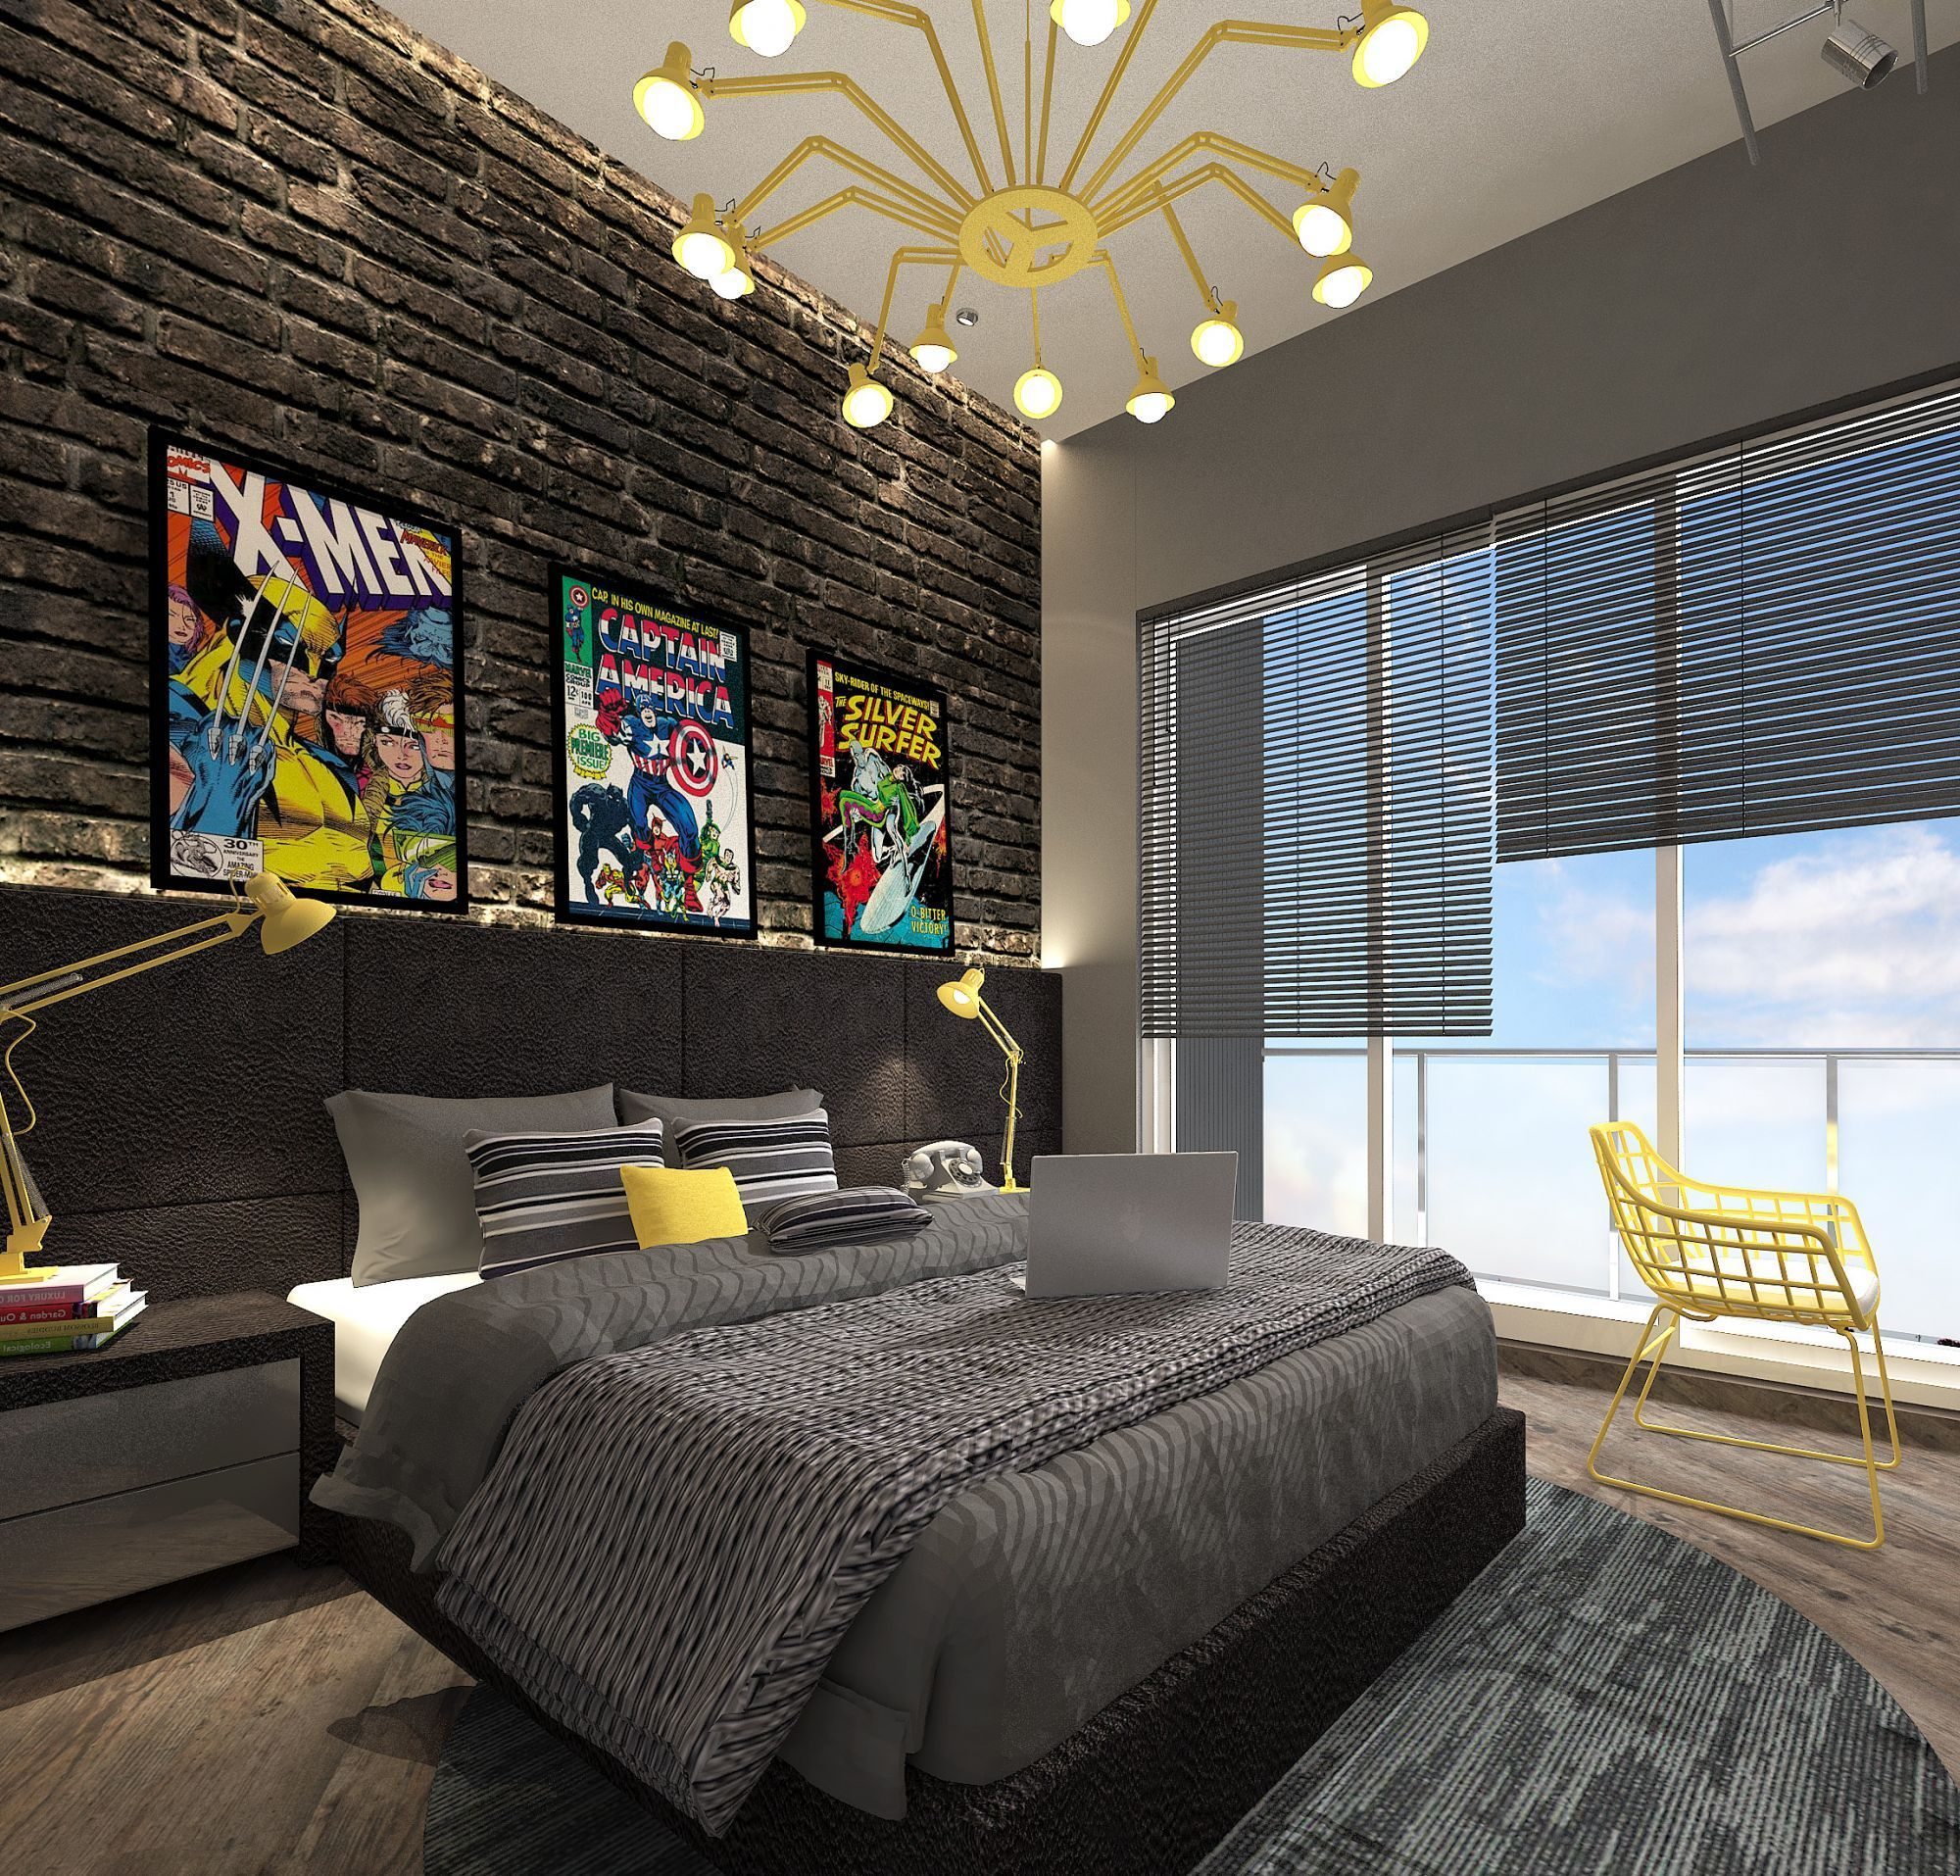 Rooms Go Bedroom Furniture Affordable Sofia Vergara Queen: Cgarchitect Professional 3d Architectural Visualization